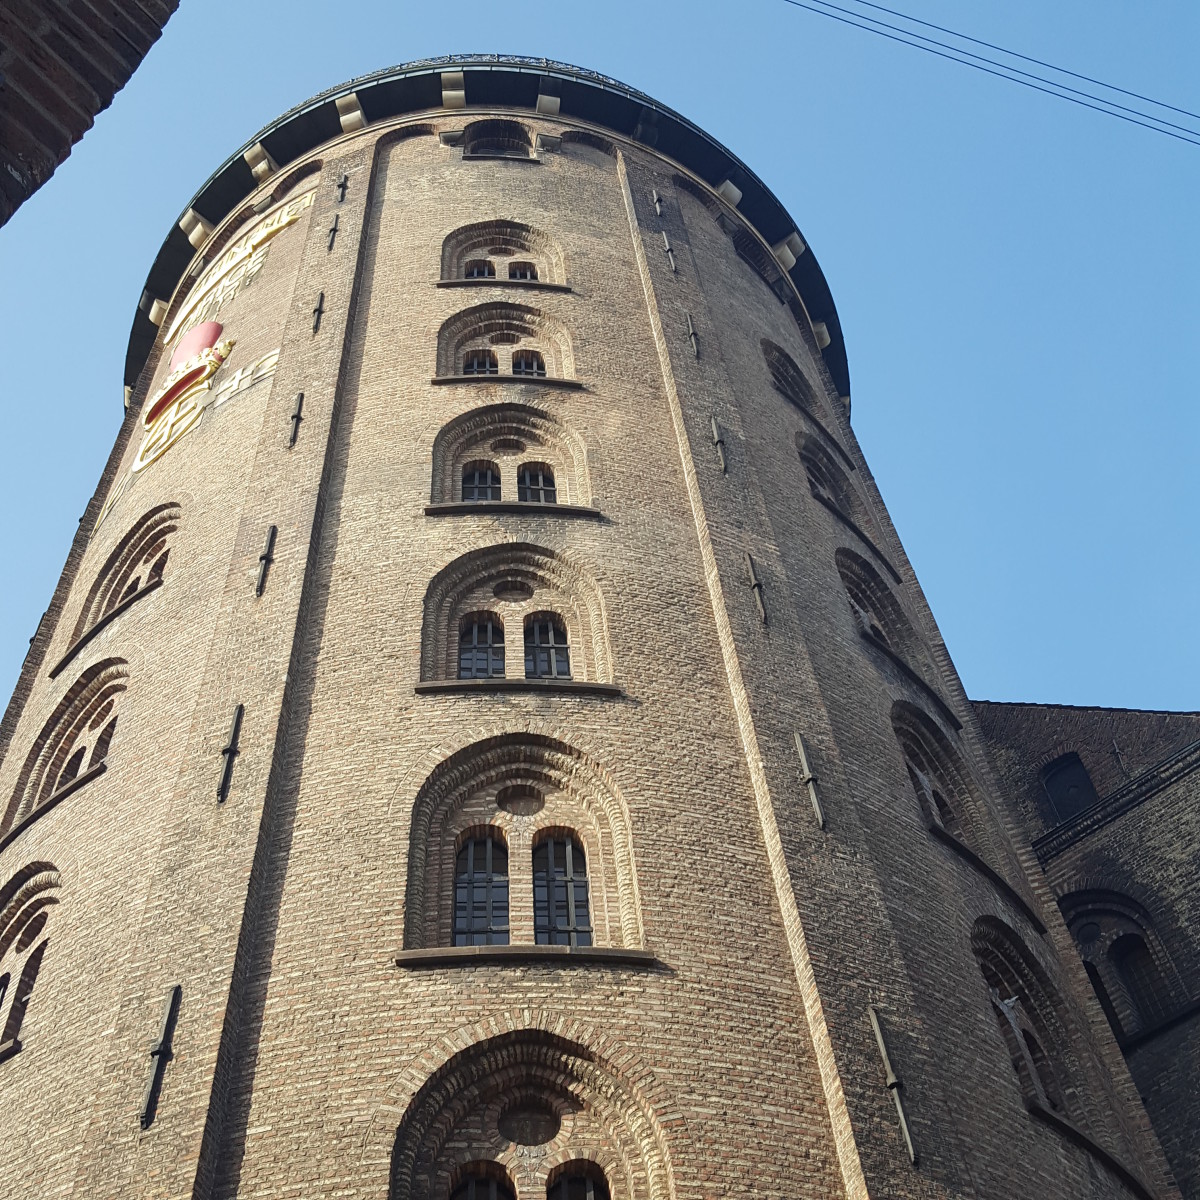 Climb to the top of the Round Tower to see views over the city.